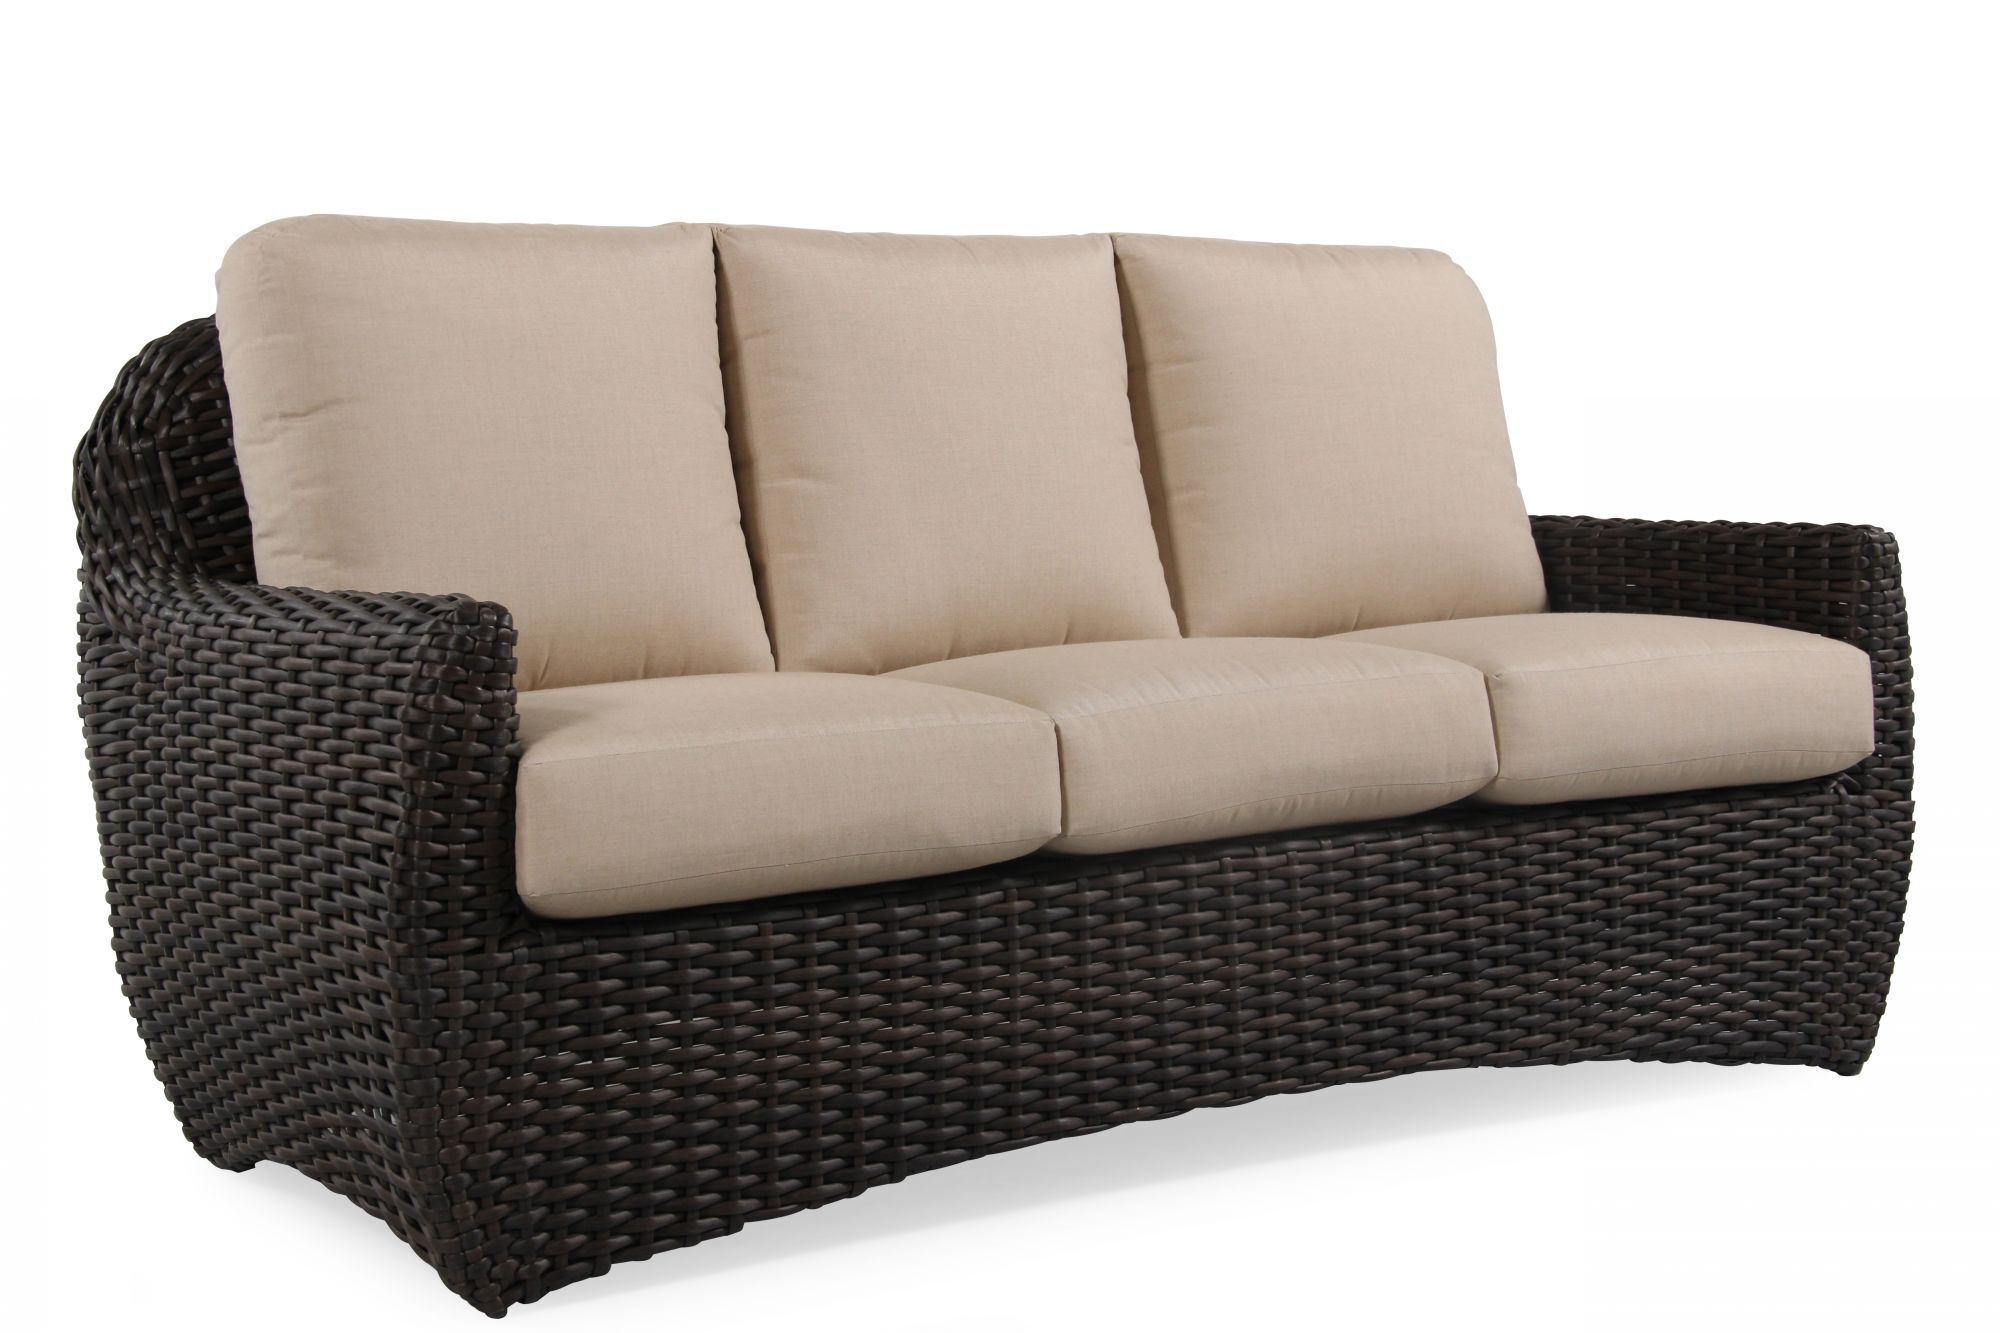 Three Seater Woven Sofa In Beige